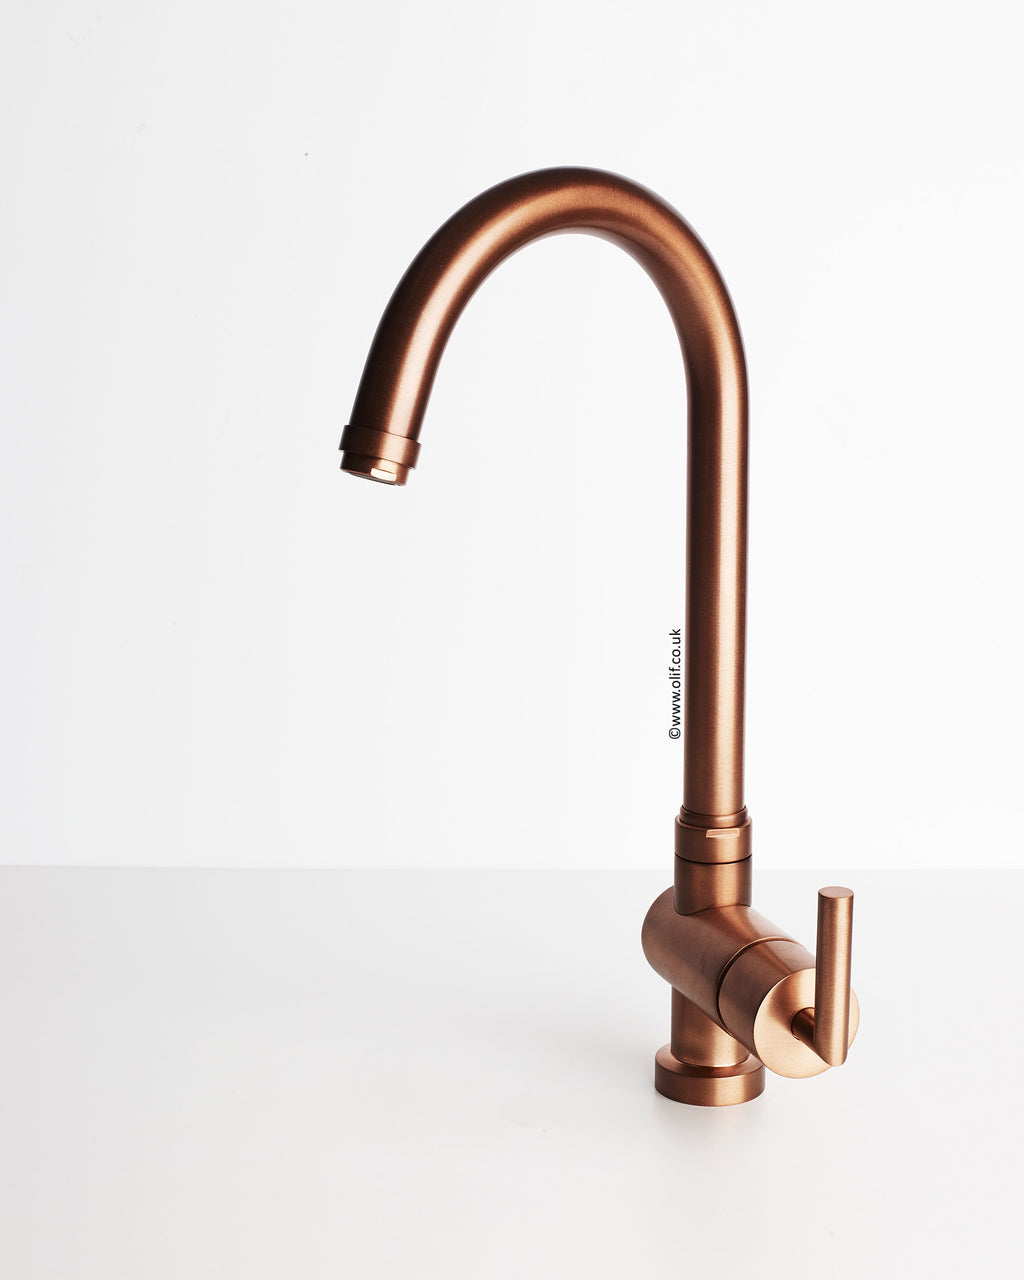 Alto Rustic Copper, kitchen mixer tap